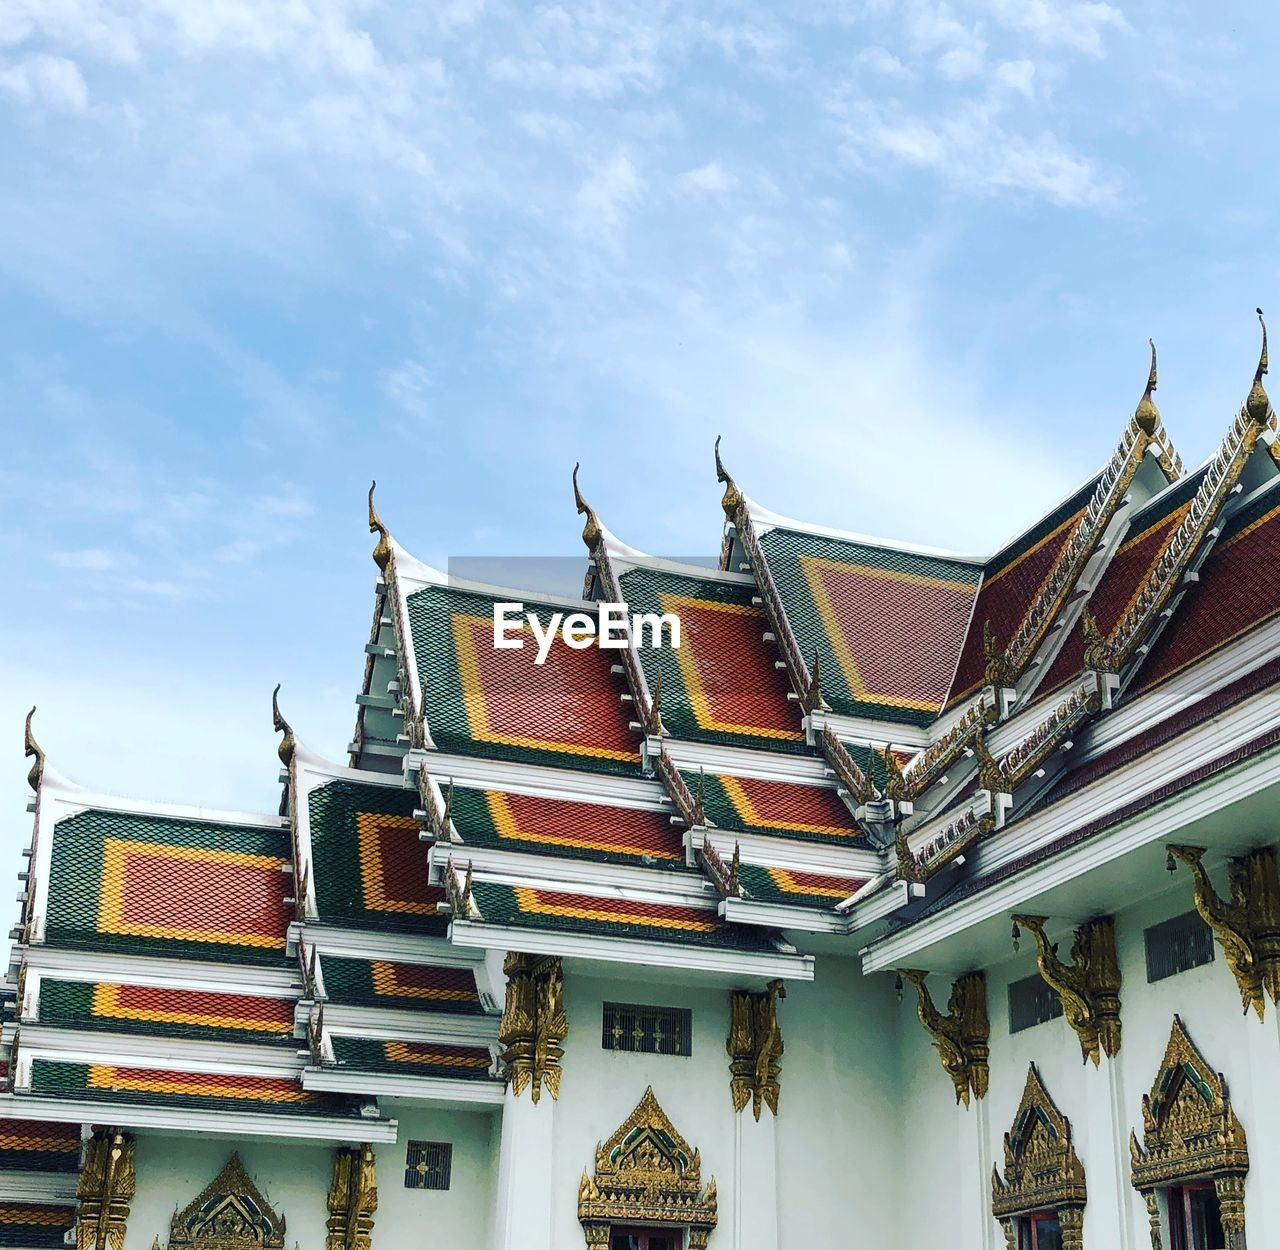 architecture, built structure, building, building exterior, sky, cloud - sky, day, low angle view, place of worship, no people, nature, religion, belief, spirituality, roof, outdoors, roof tile